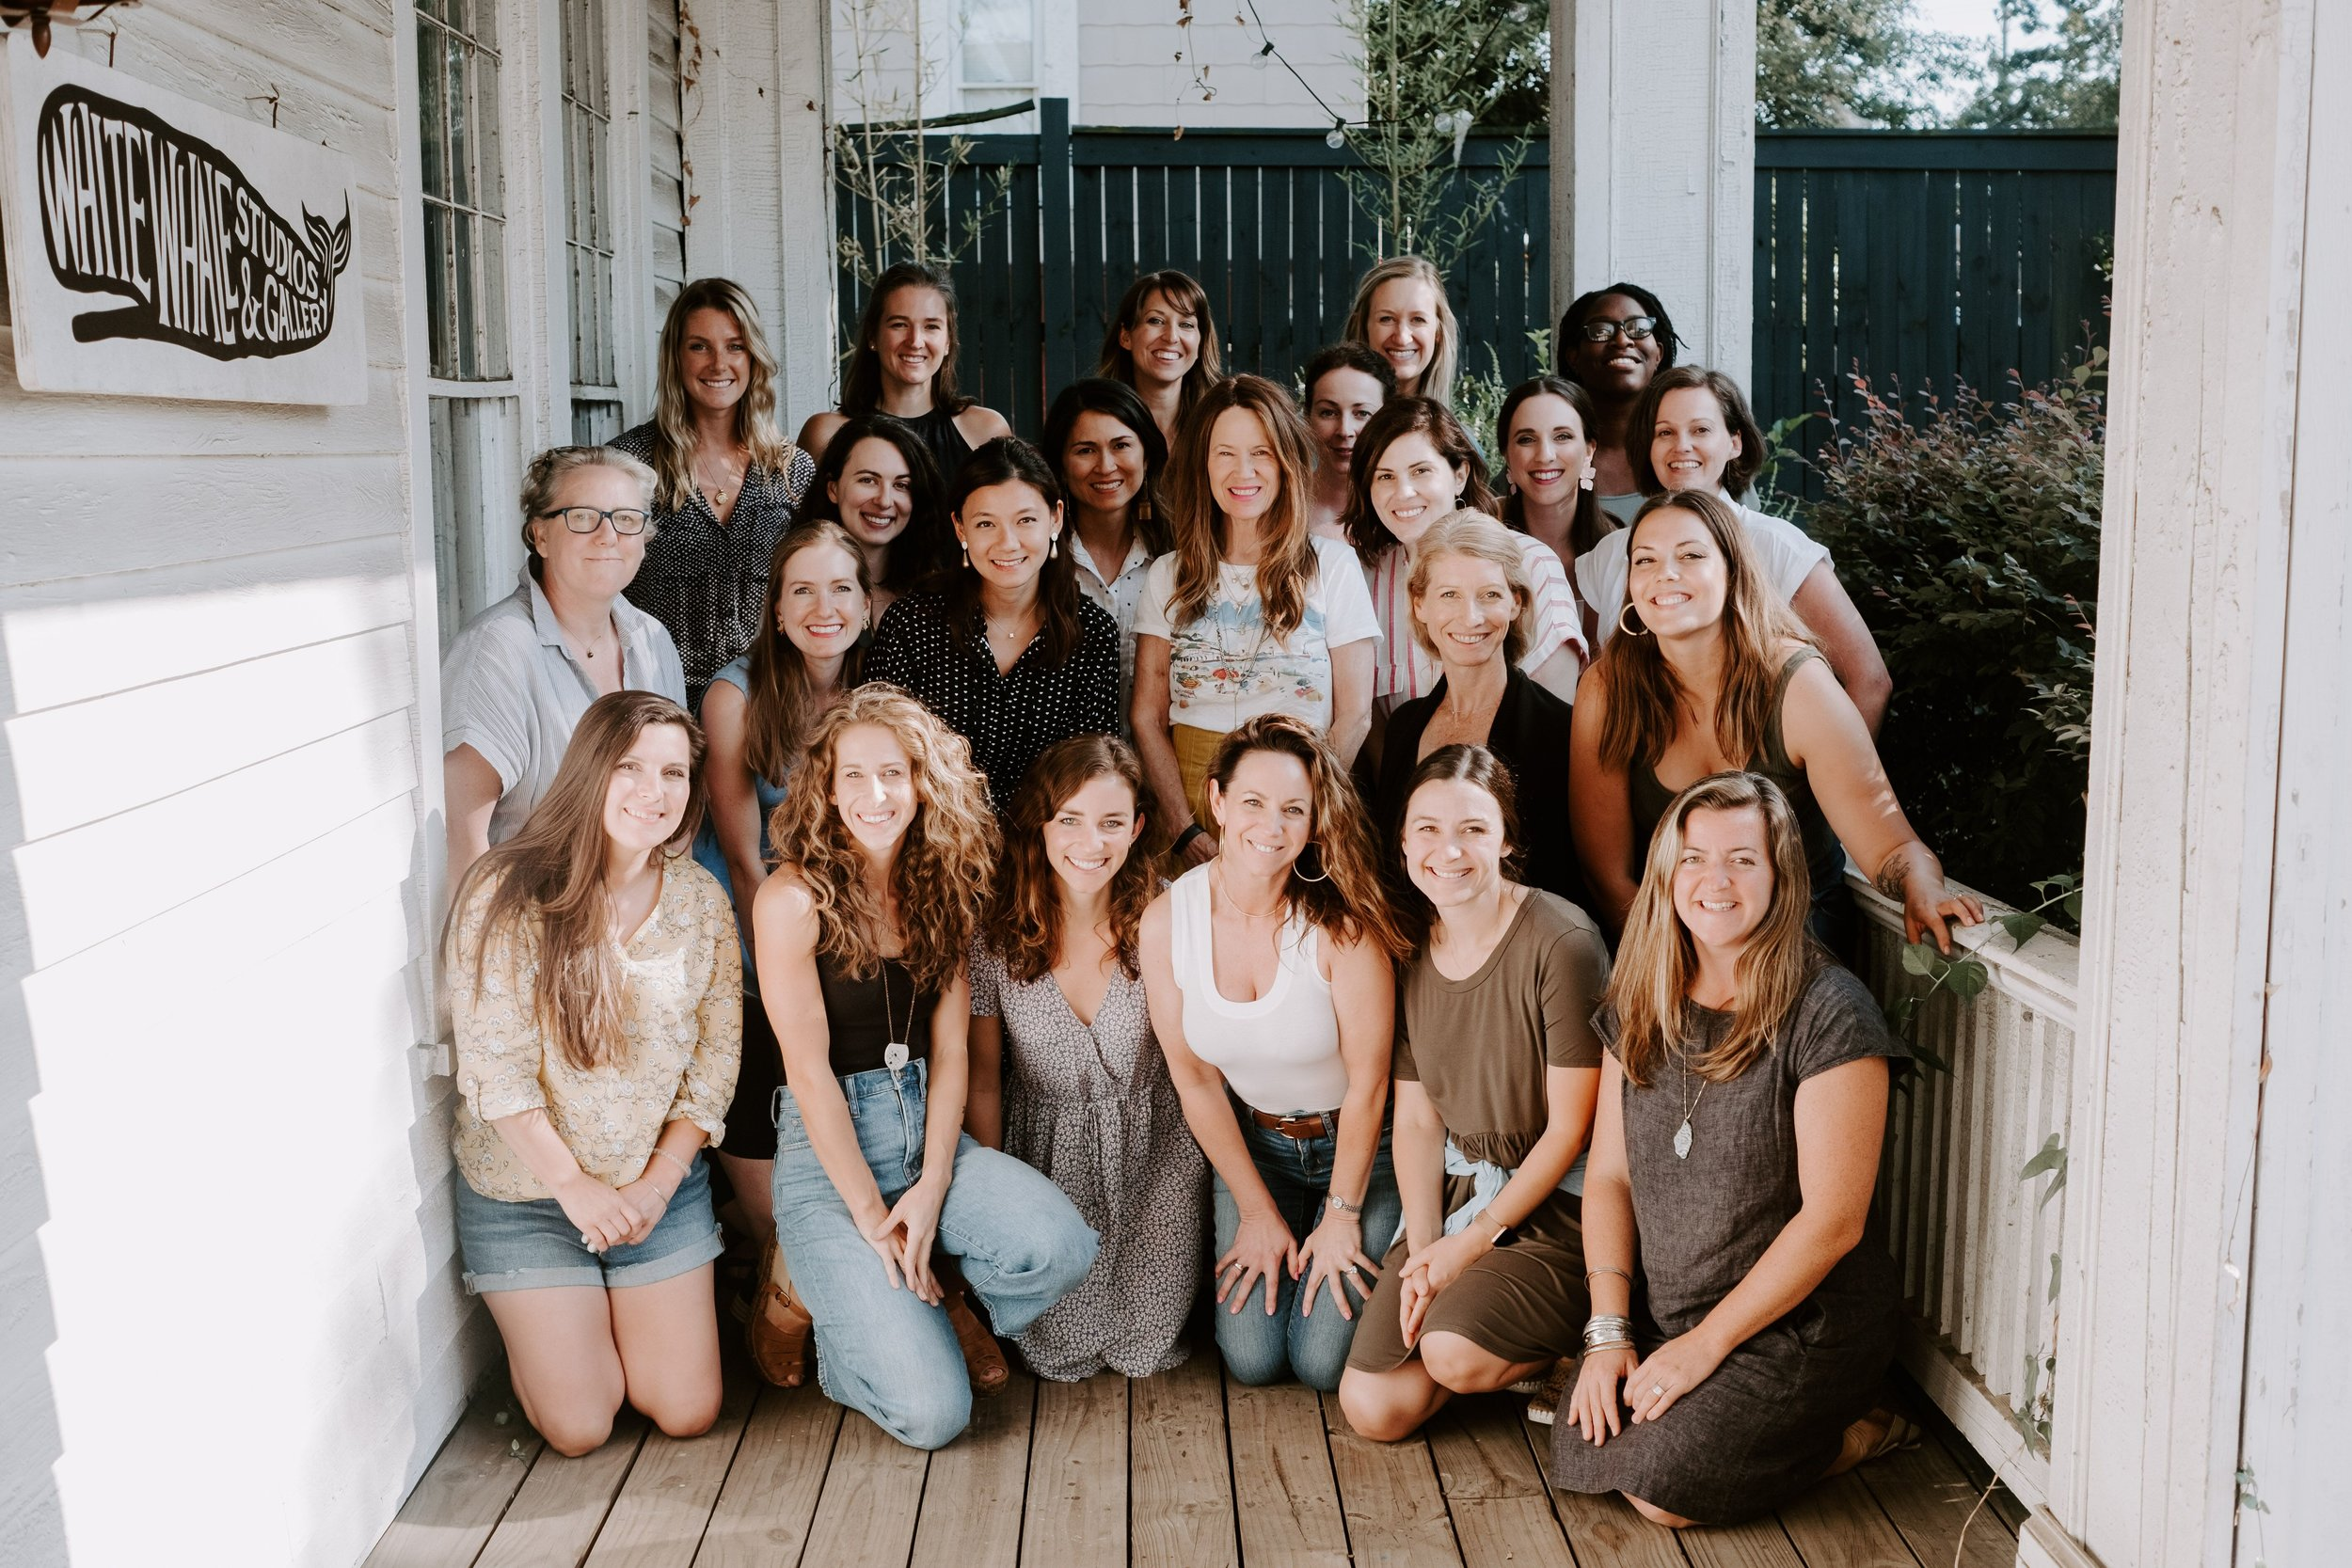 This little adventure was one for the books. I didn't realize quite what I was signing up for when I applied to  @emily_jeffords  mastermind a year ago, but I am extraordinarily grateful I did. Spending a year meeting with these brilliant women, learning from them, being challenged and encouraged by them, and growing together has been one of the most meaningful parts of my life as an artist so far. Being together in person this past week (which makes me laugh because I guess we technically all met on the internet) reminded me what a gift community is, in all parts of life. I am filled to the brim.